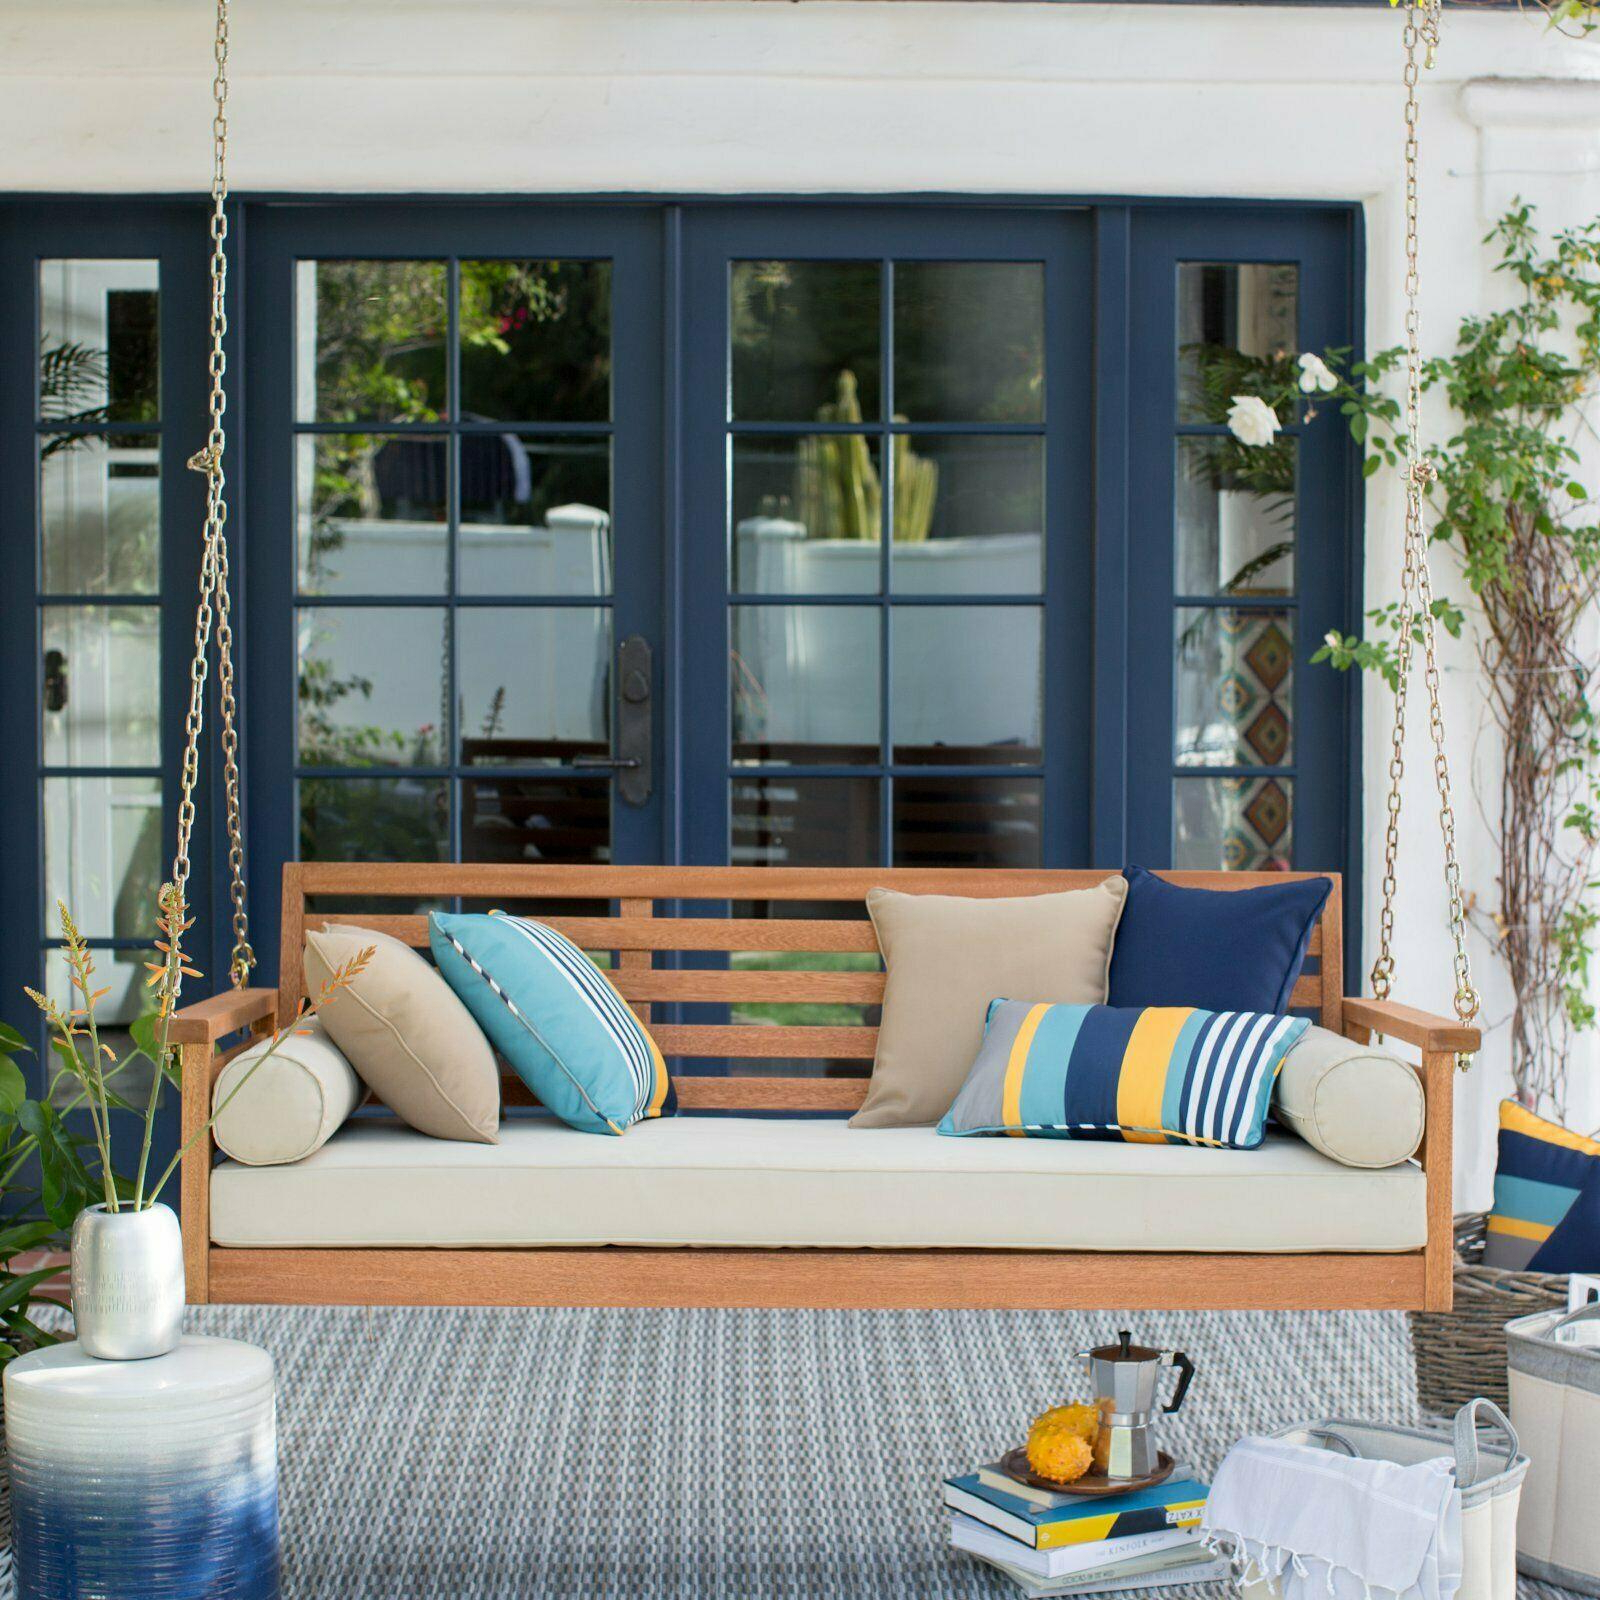 Belham Living Brighton Deep Seating 65 In. Porch Swing Bed With Cushion For Current Porch Swings (Gallery 19 of 26)